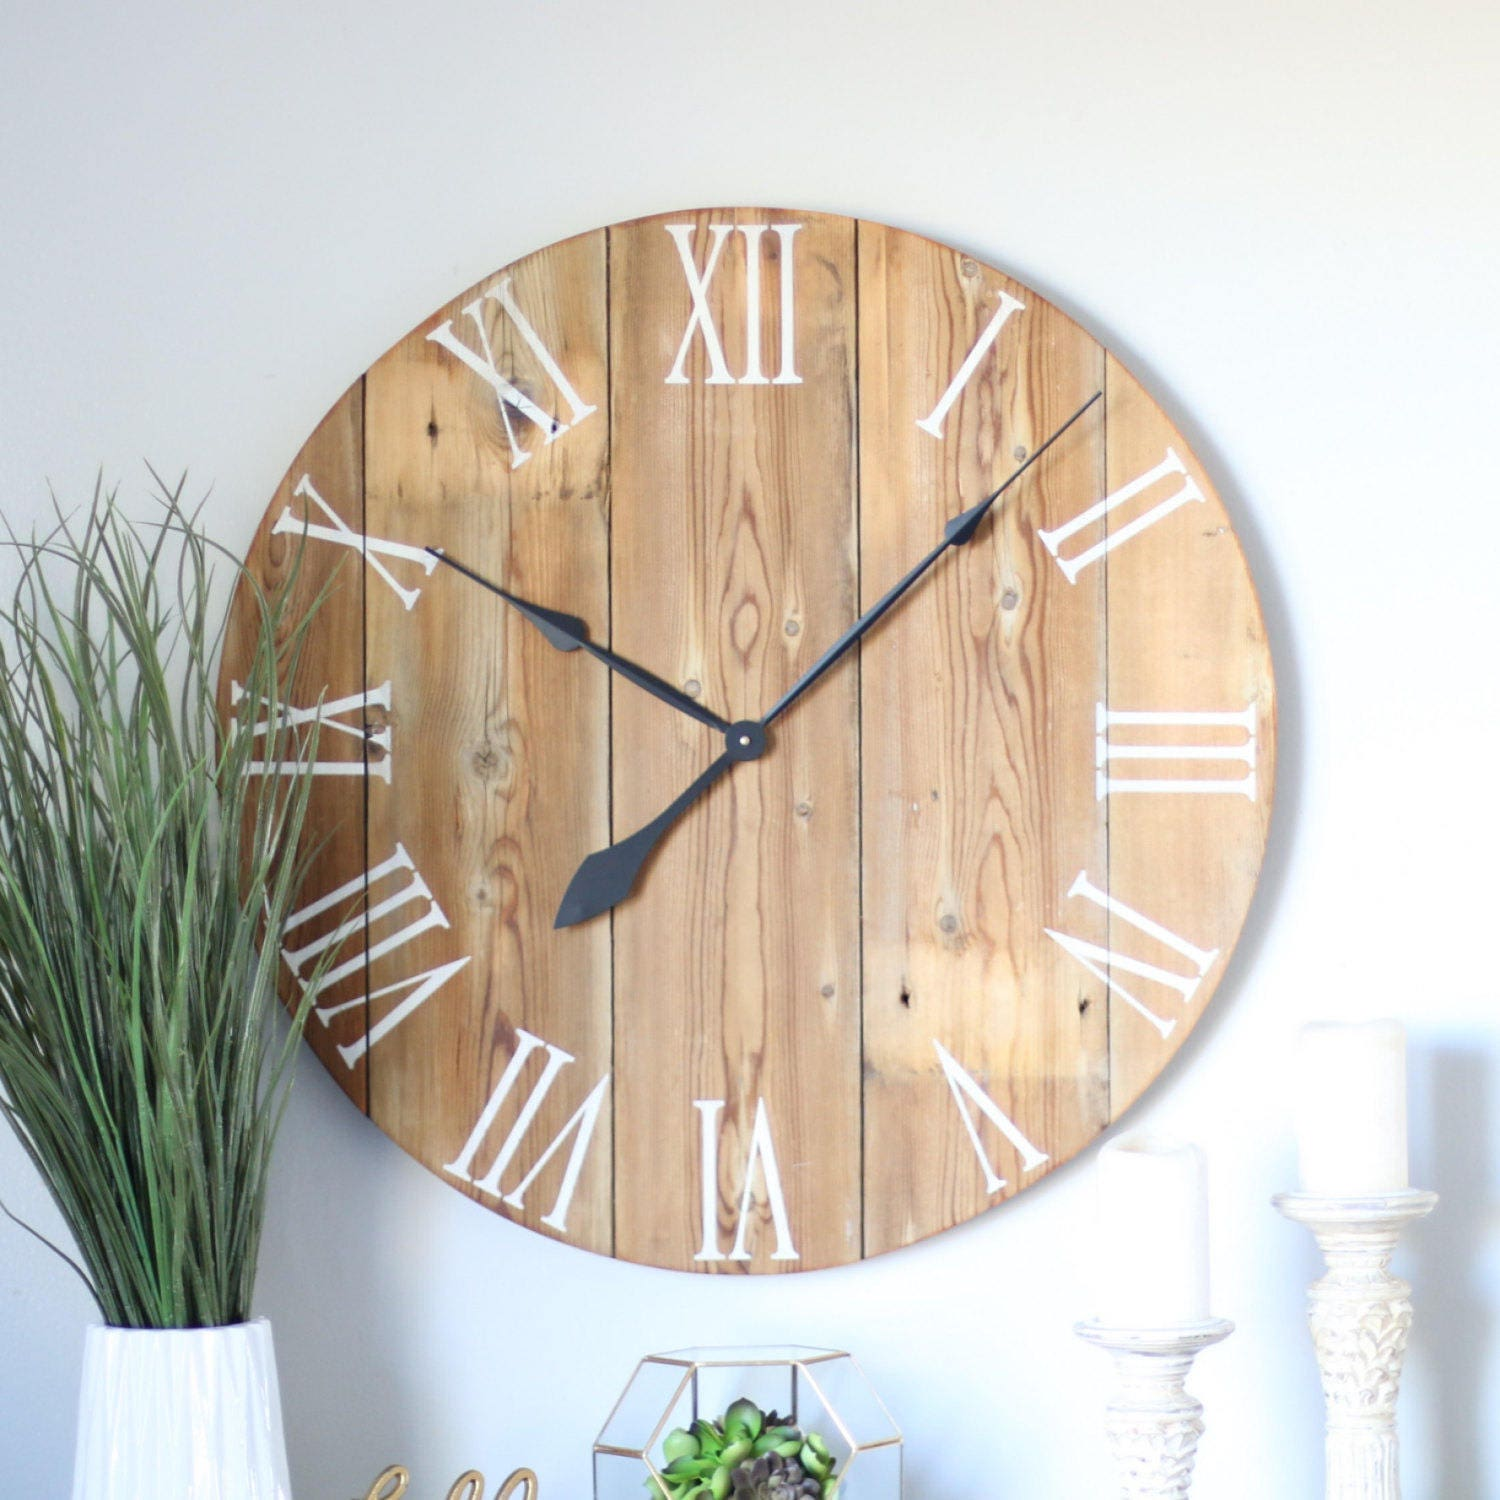 Handmade wooden wall clock large wall clock rustic wall details this large wall clock amipublicfo Image collections